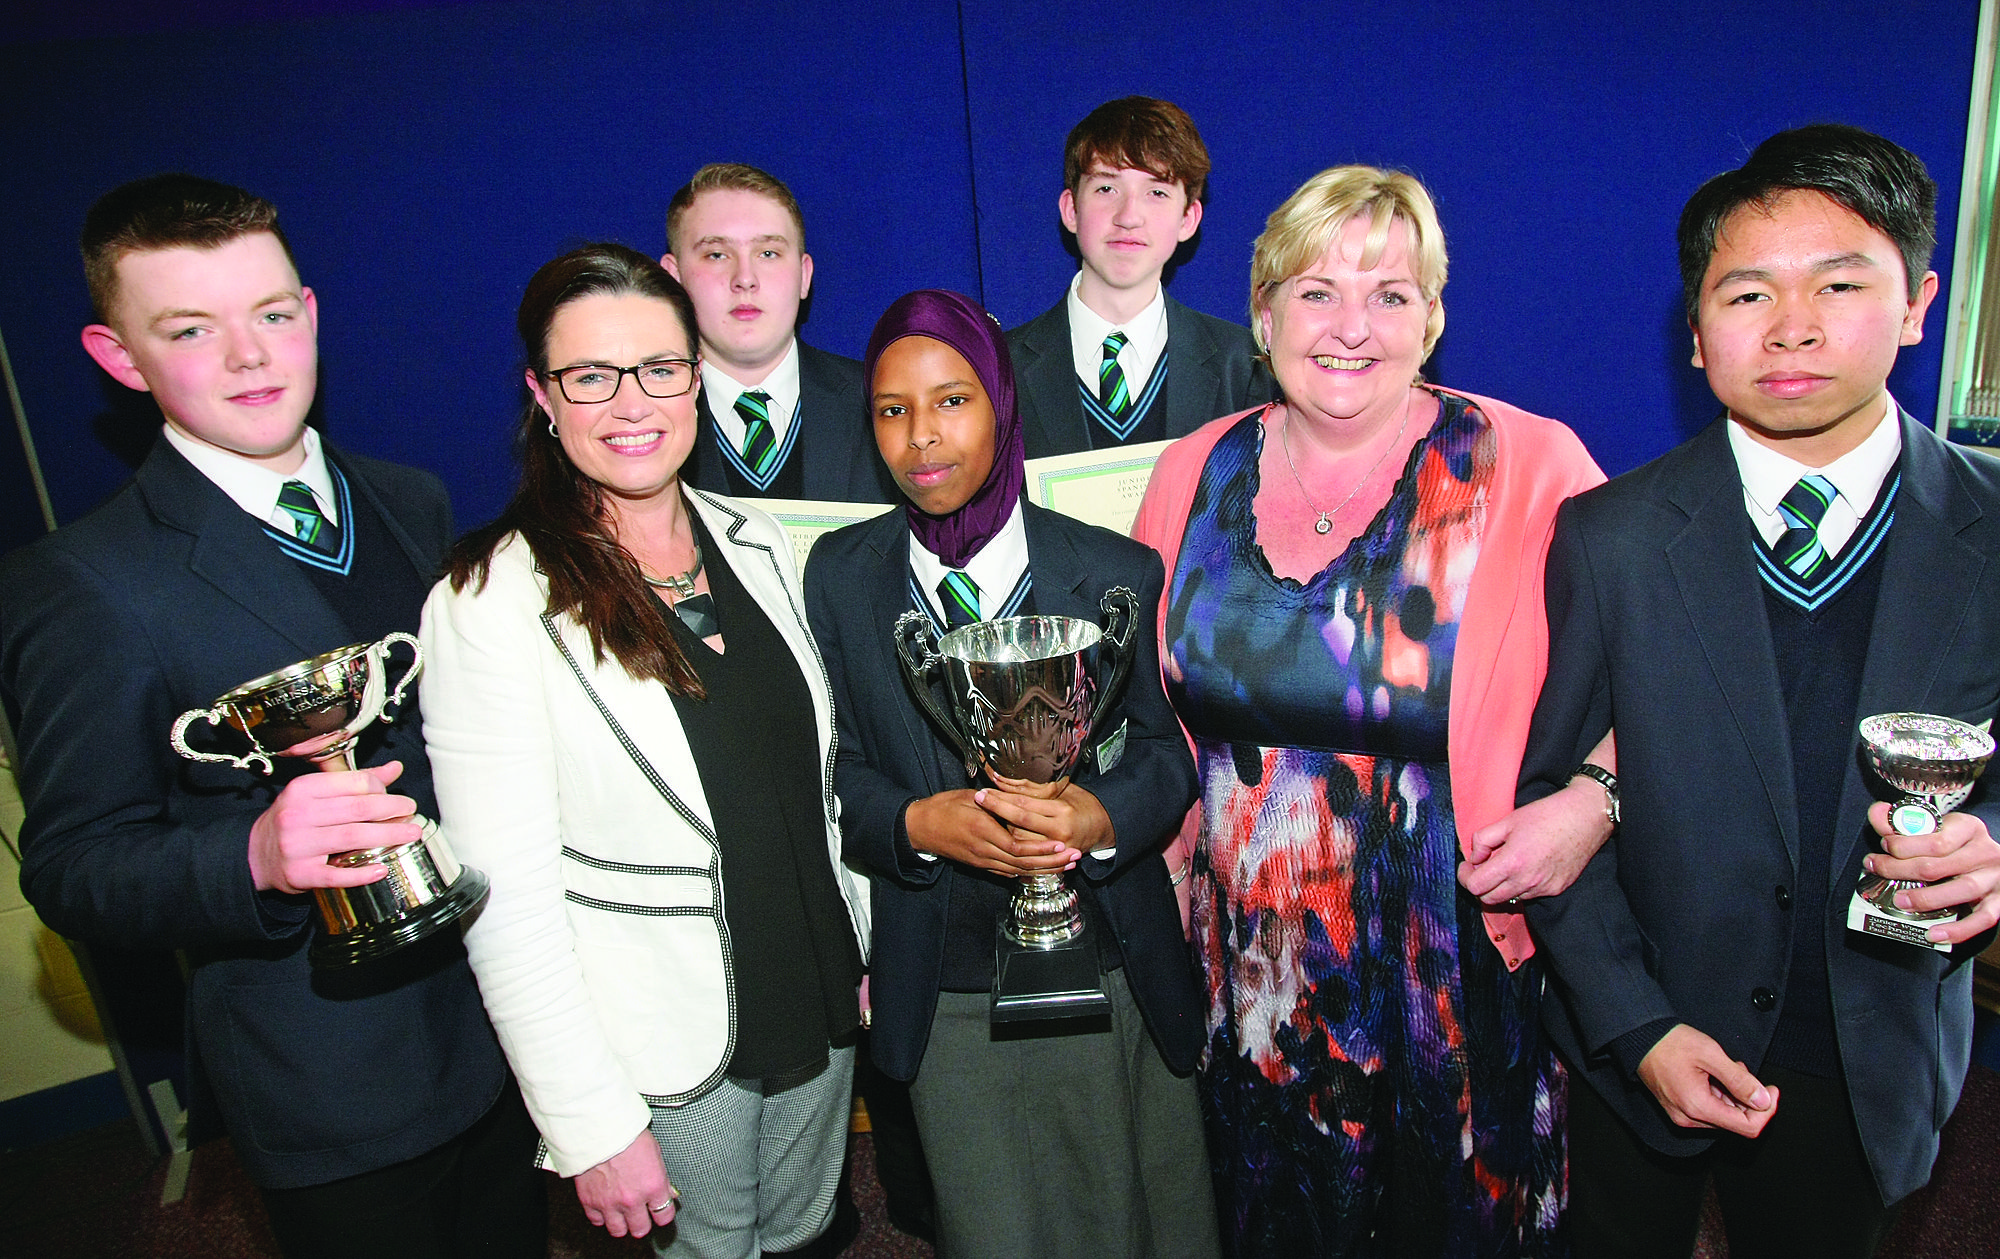 OPEN DOOR POLICY: Malone College is among schools championing diversity; principal Katrina Moore is pictured with colleagues and award-winning pupils